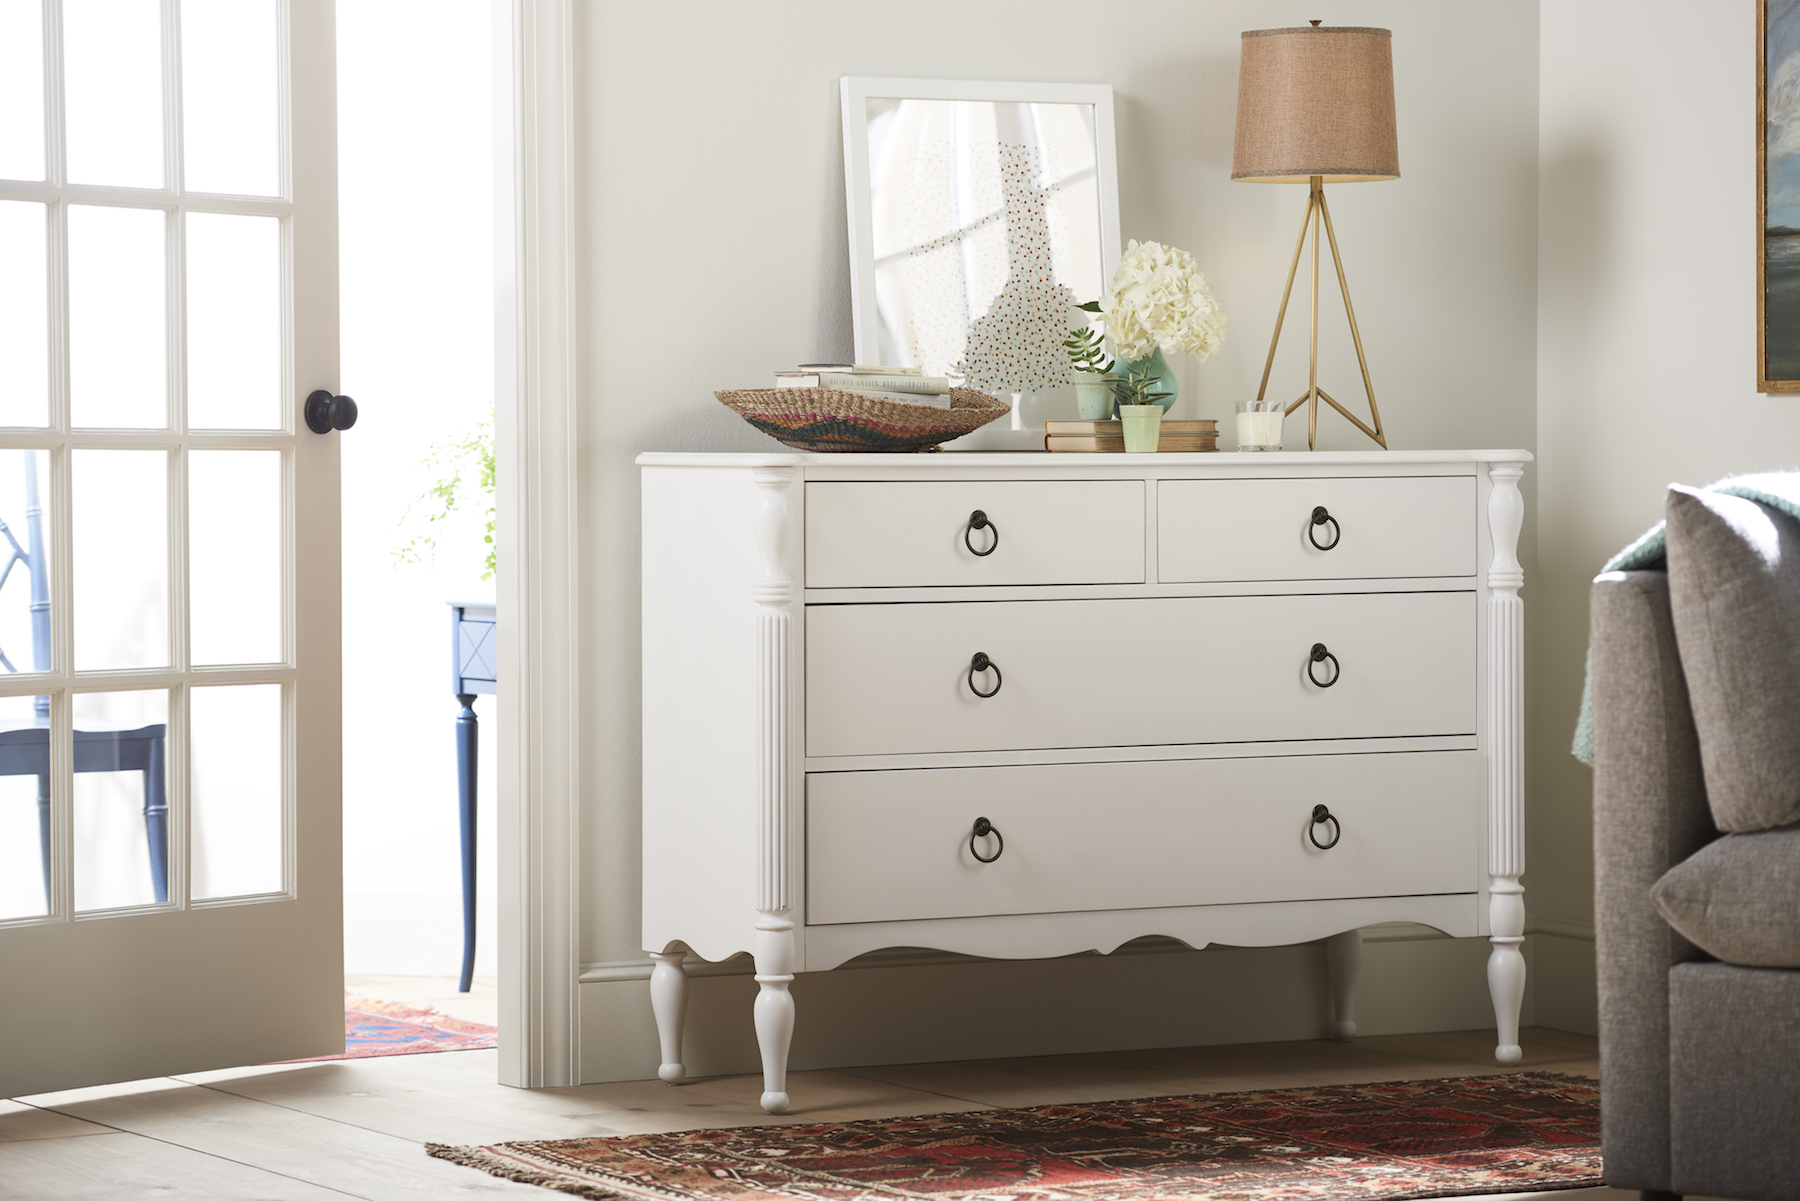 White dresser with drawer pulls in living room